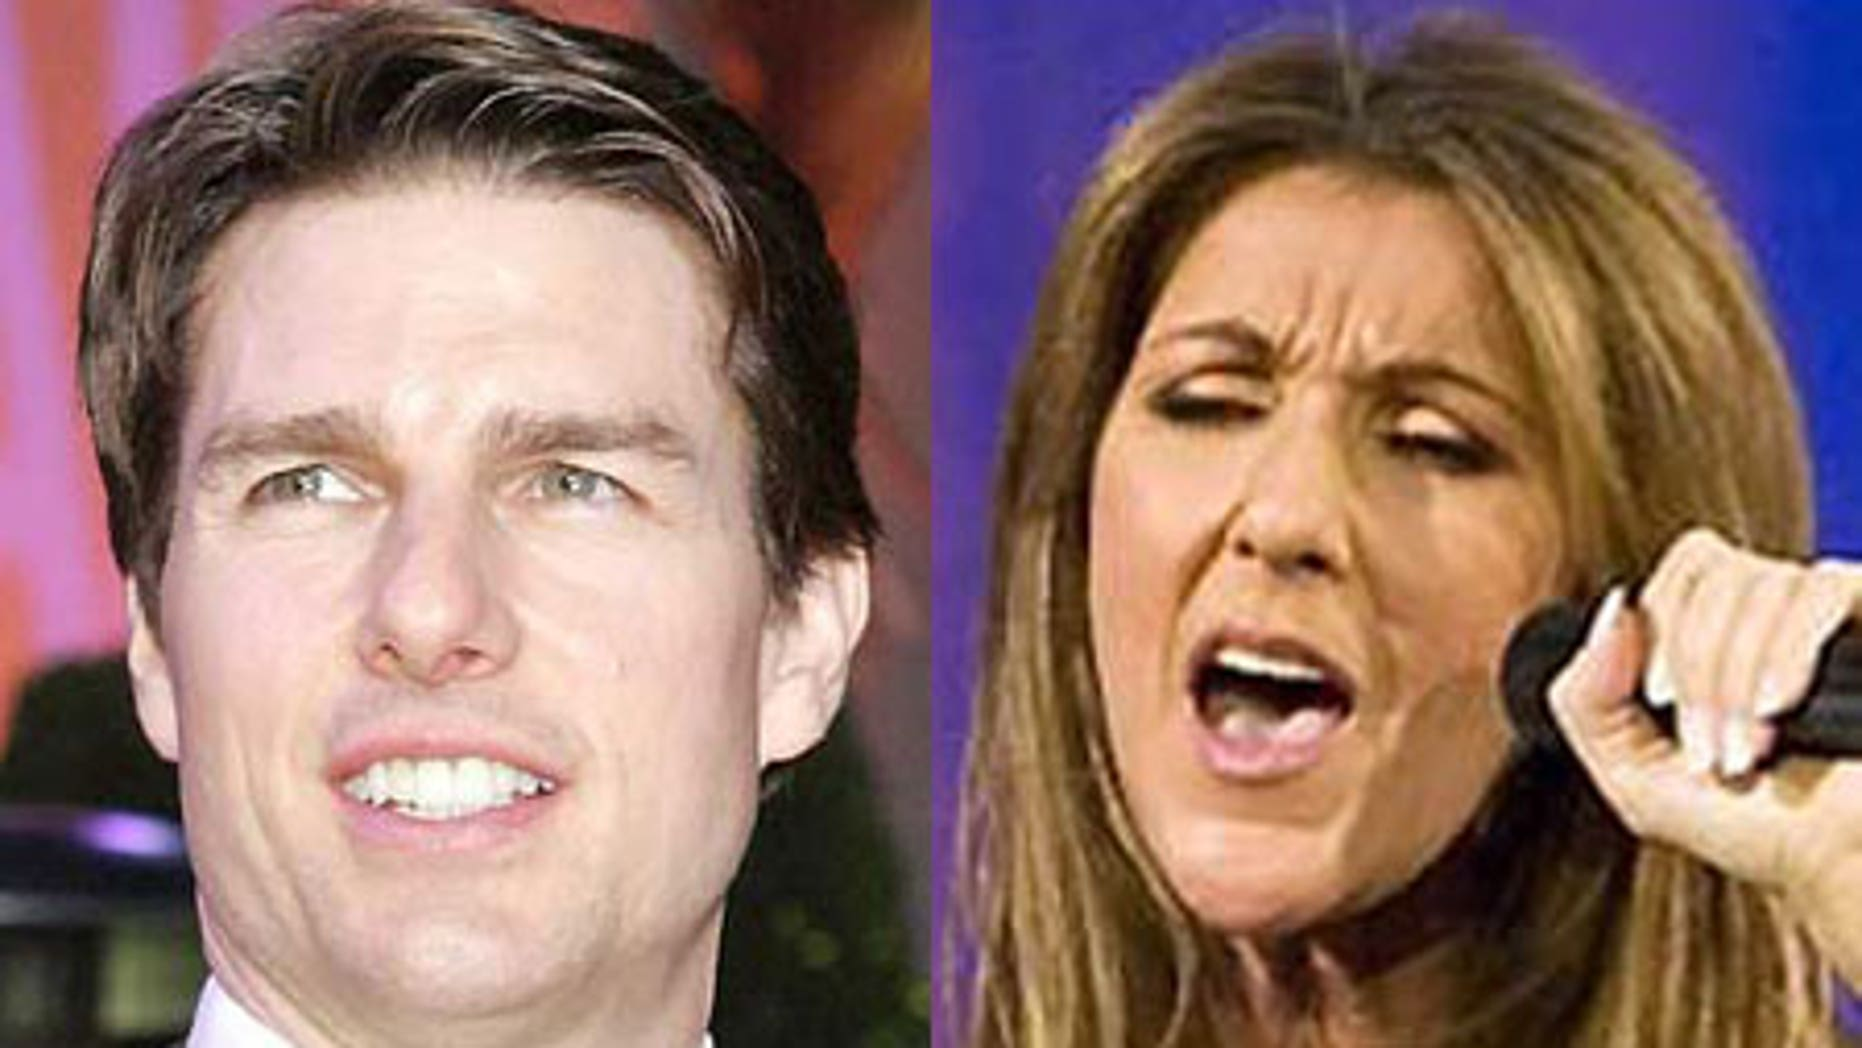 Both Tom Cruise and Celine Dion are two celebs whose carbon footprints are substantial.